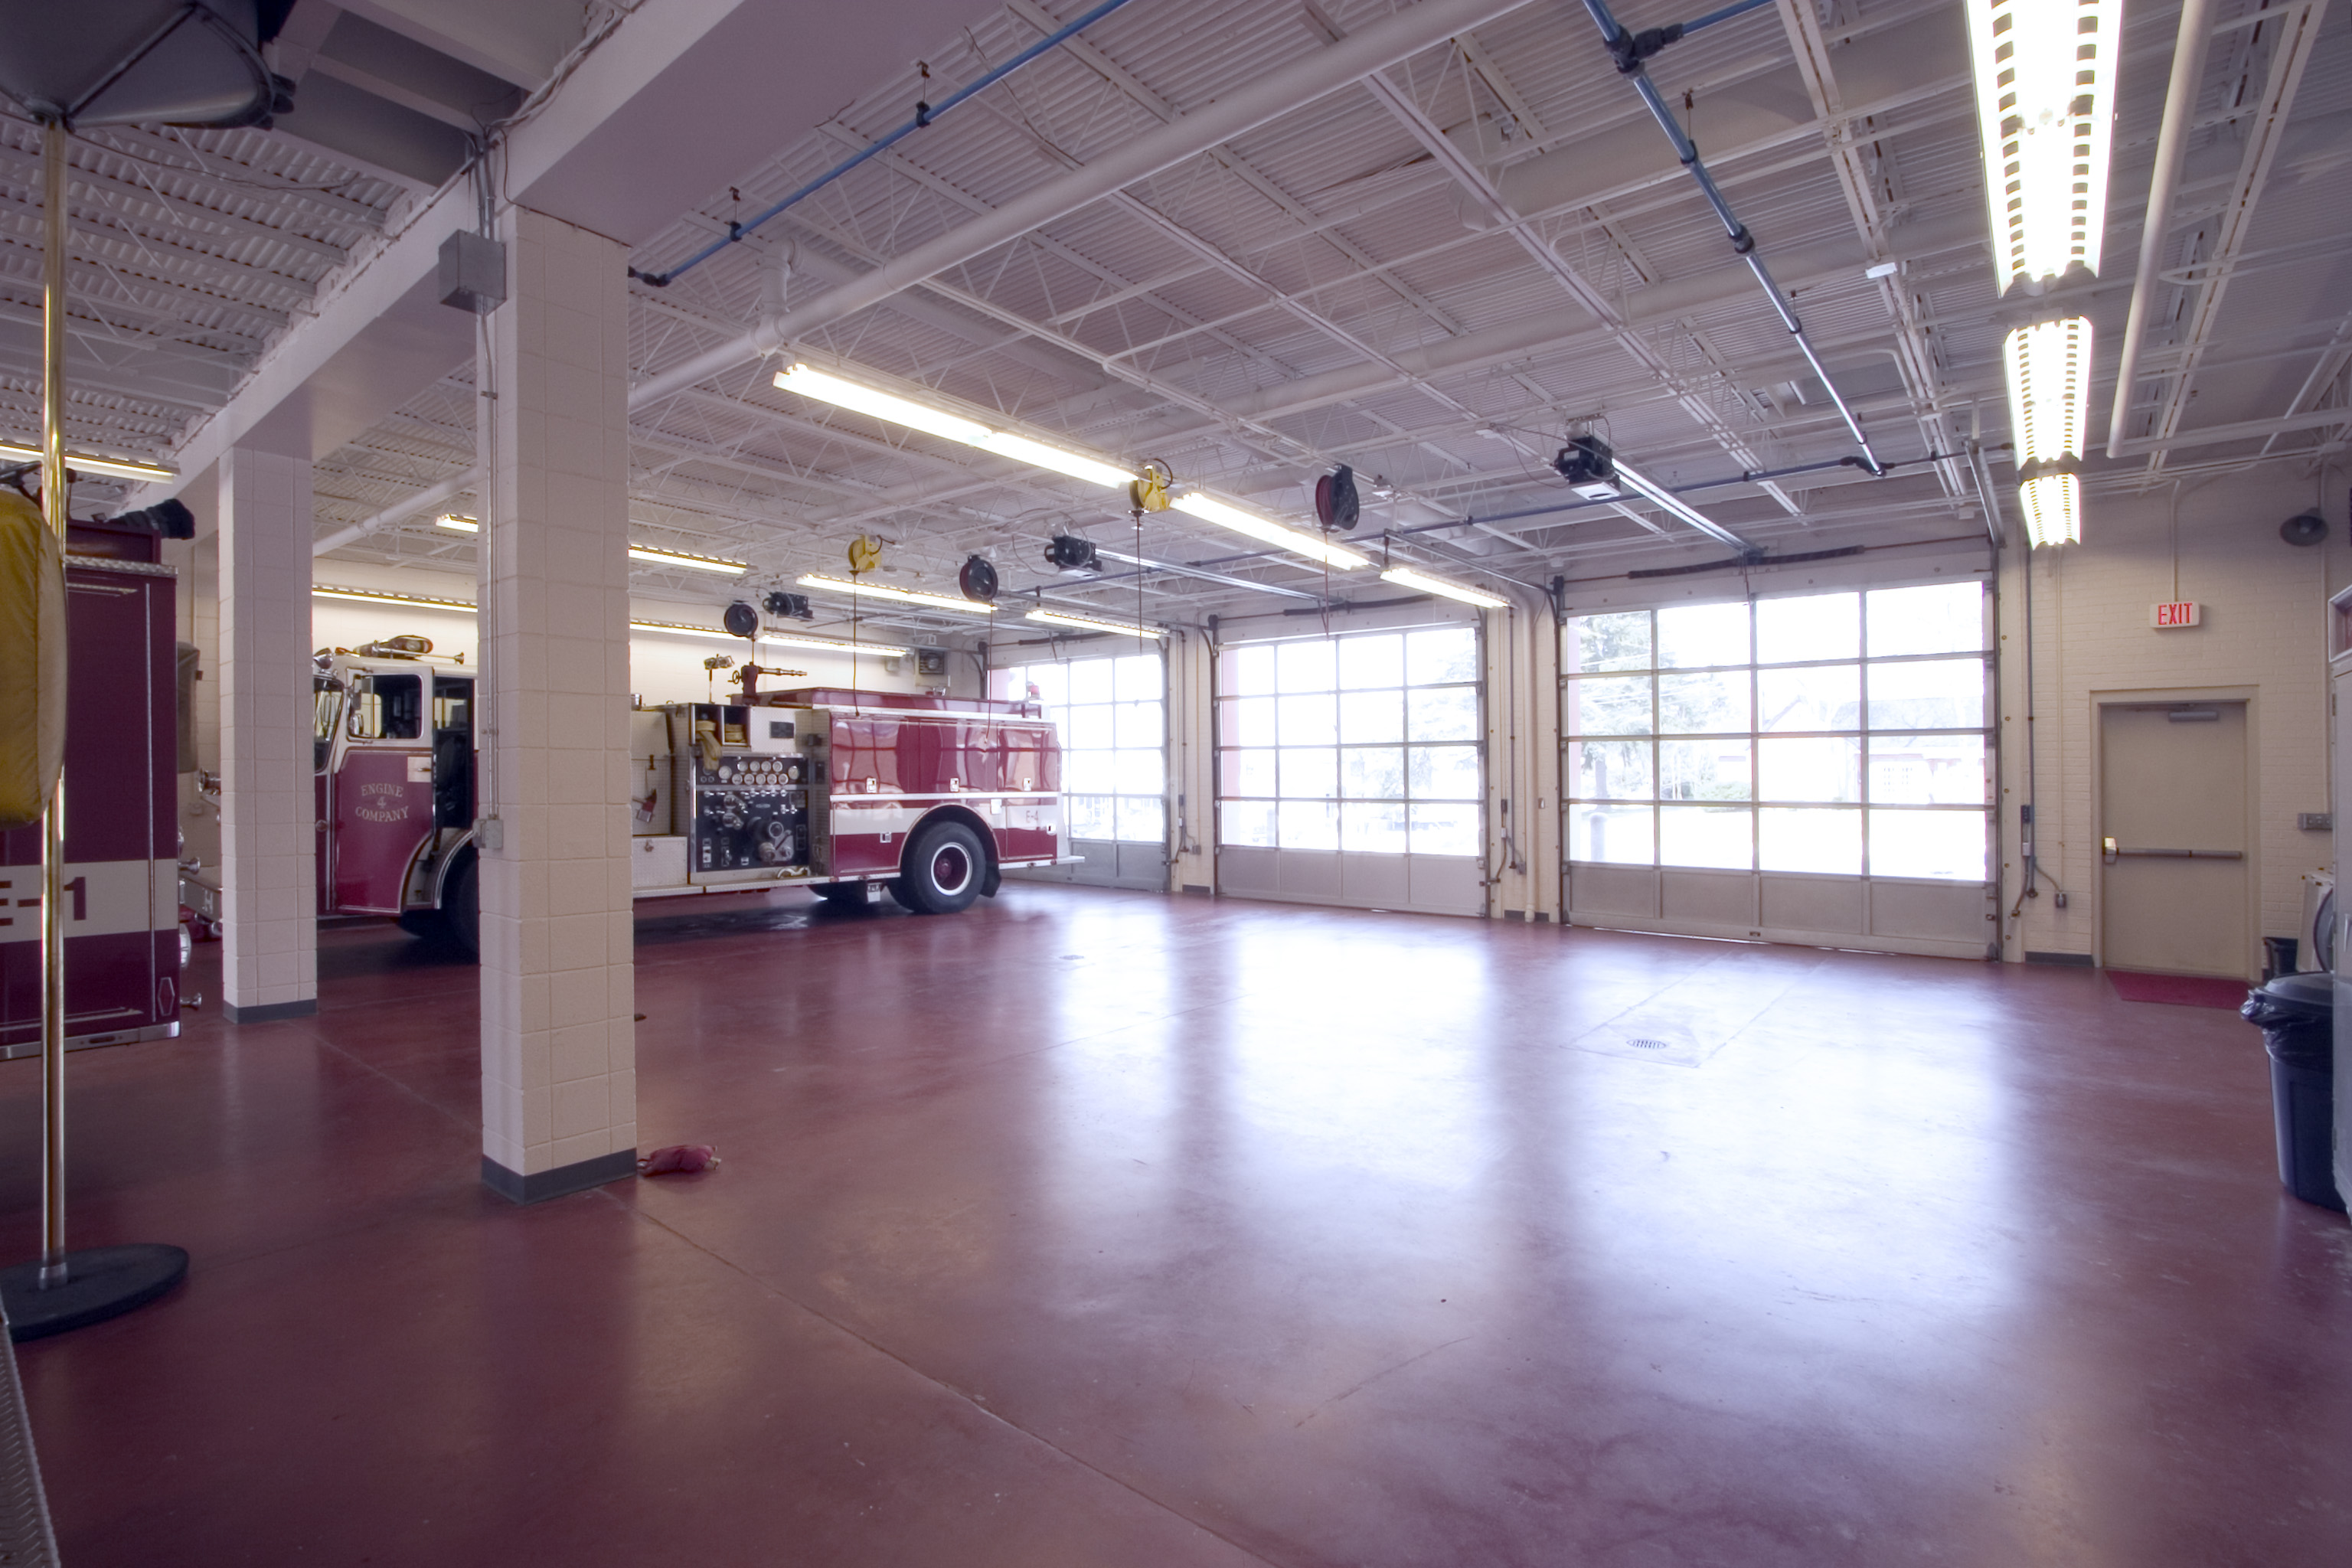 Open floor in fire station